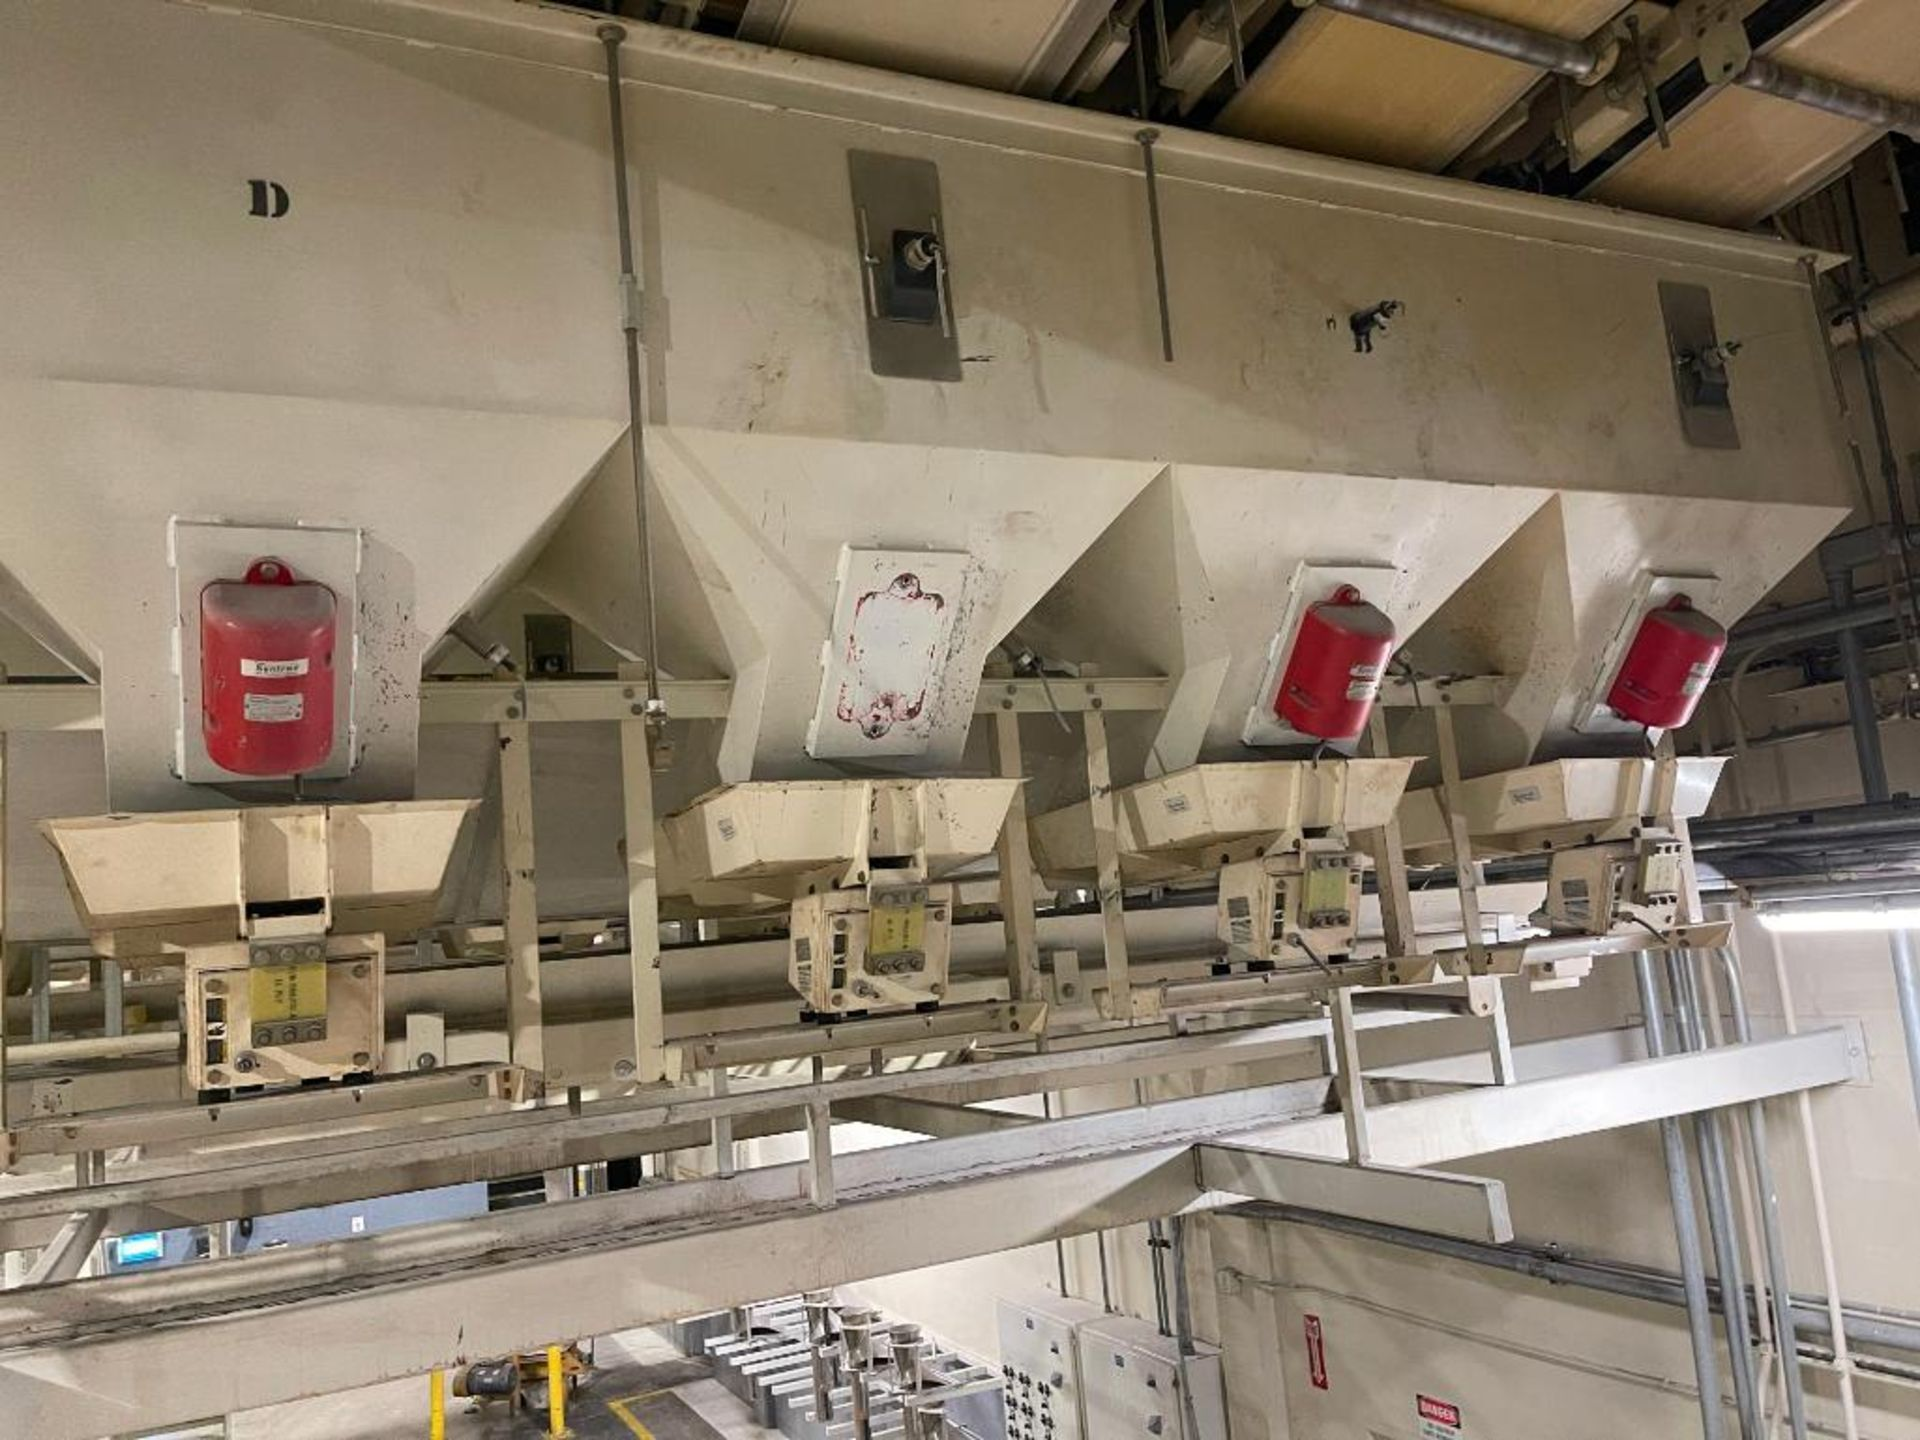 Aseeco 5-bin blending system with 5 Syntron vibratory feeders on bottom - Image 17 of 18